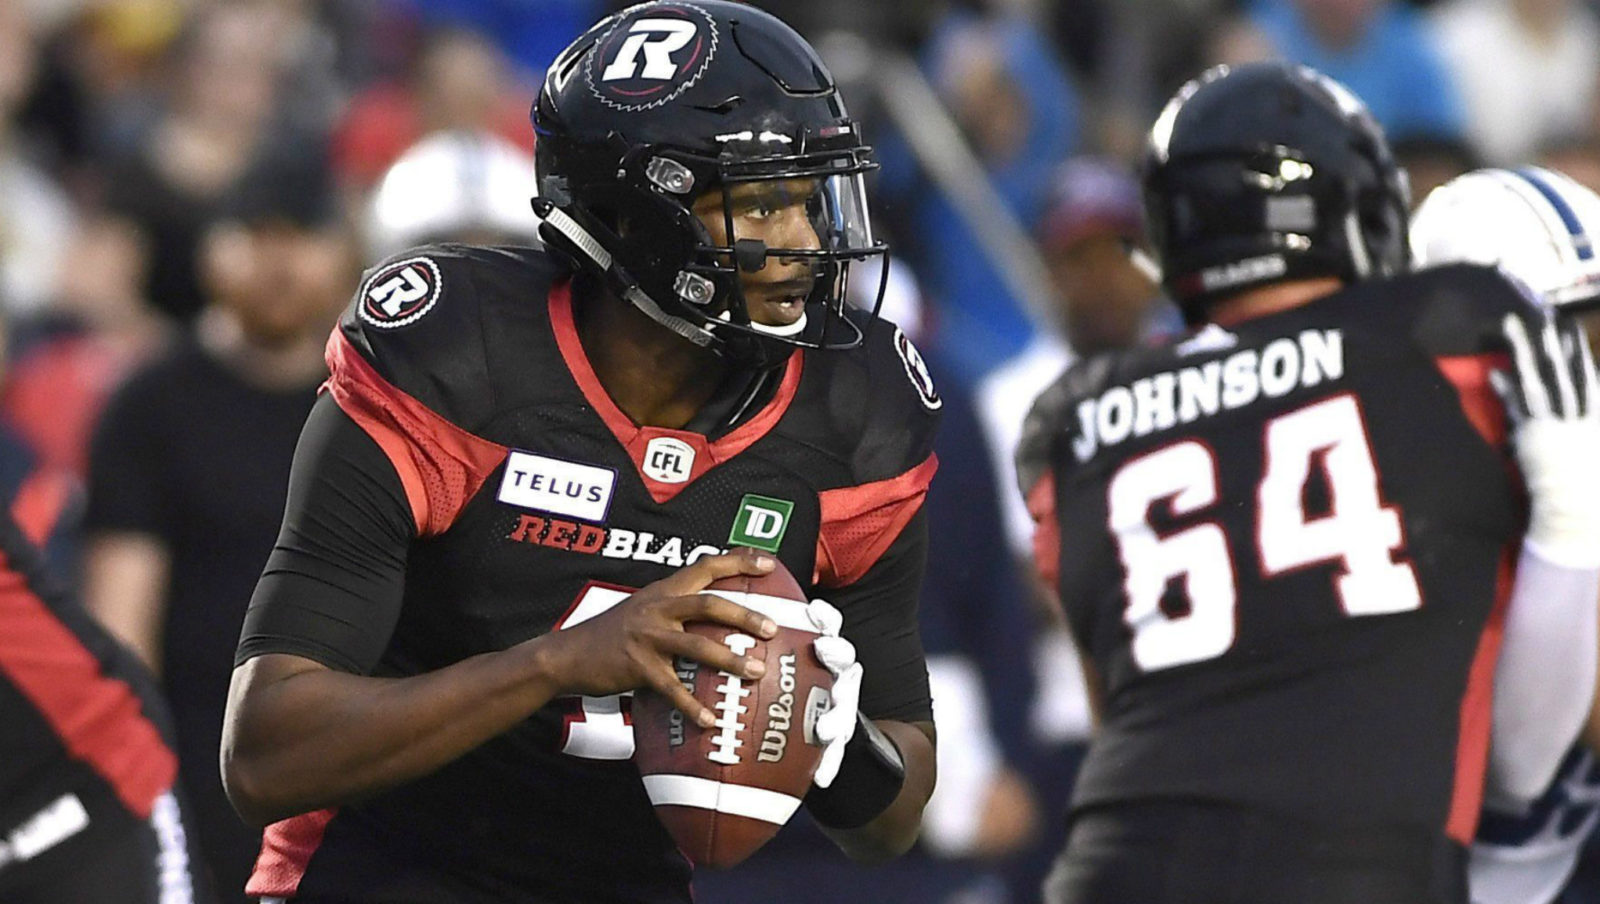 Checking Down  REDBLACKS  QB contest wide open - CFL.ca 1ea9fa1d3